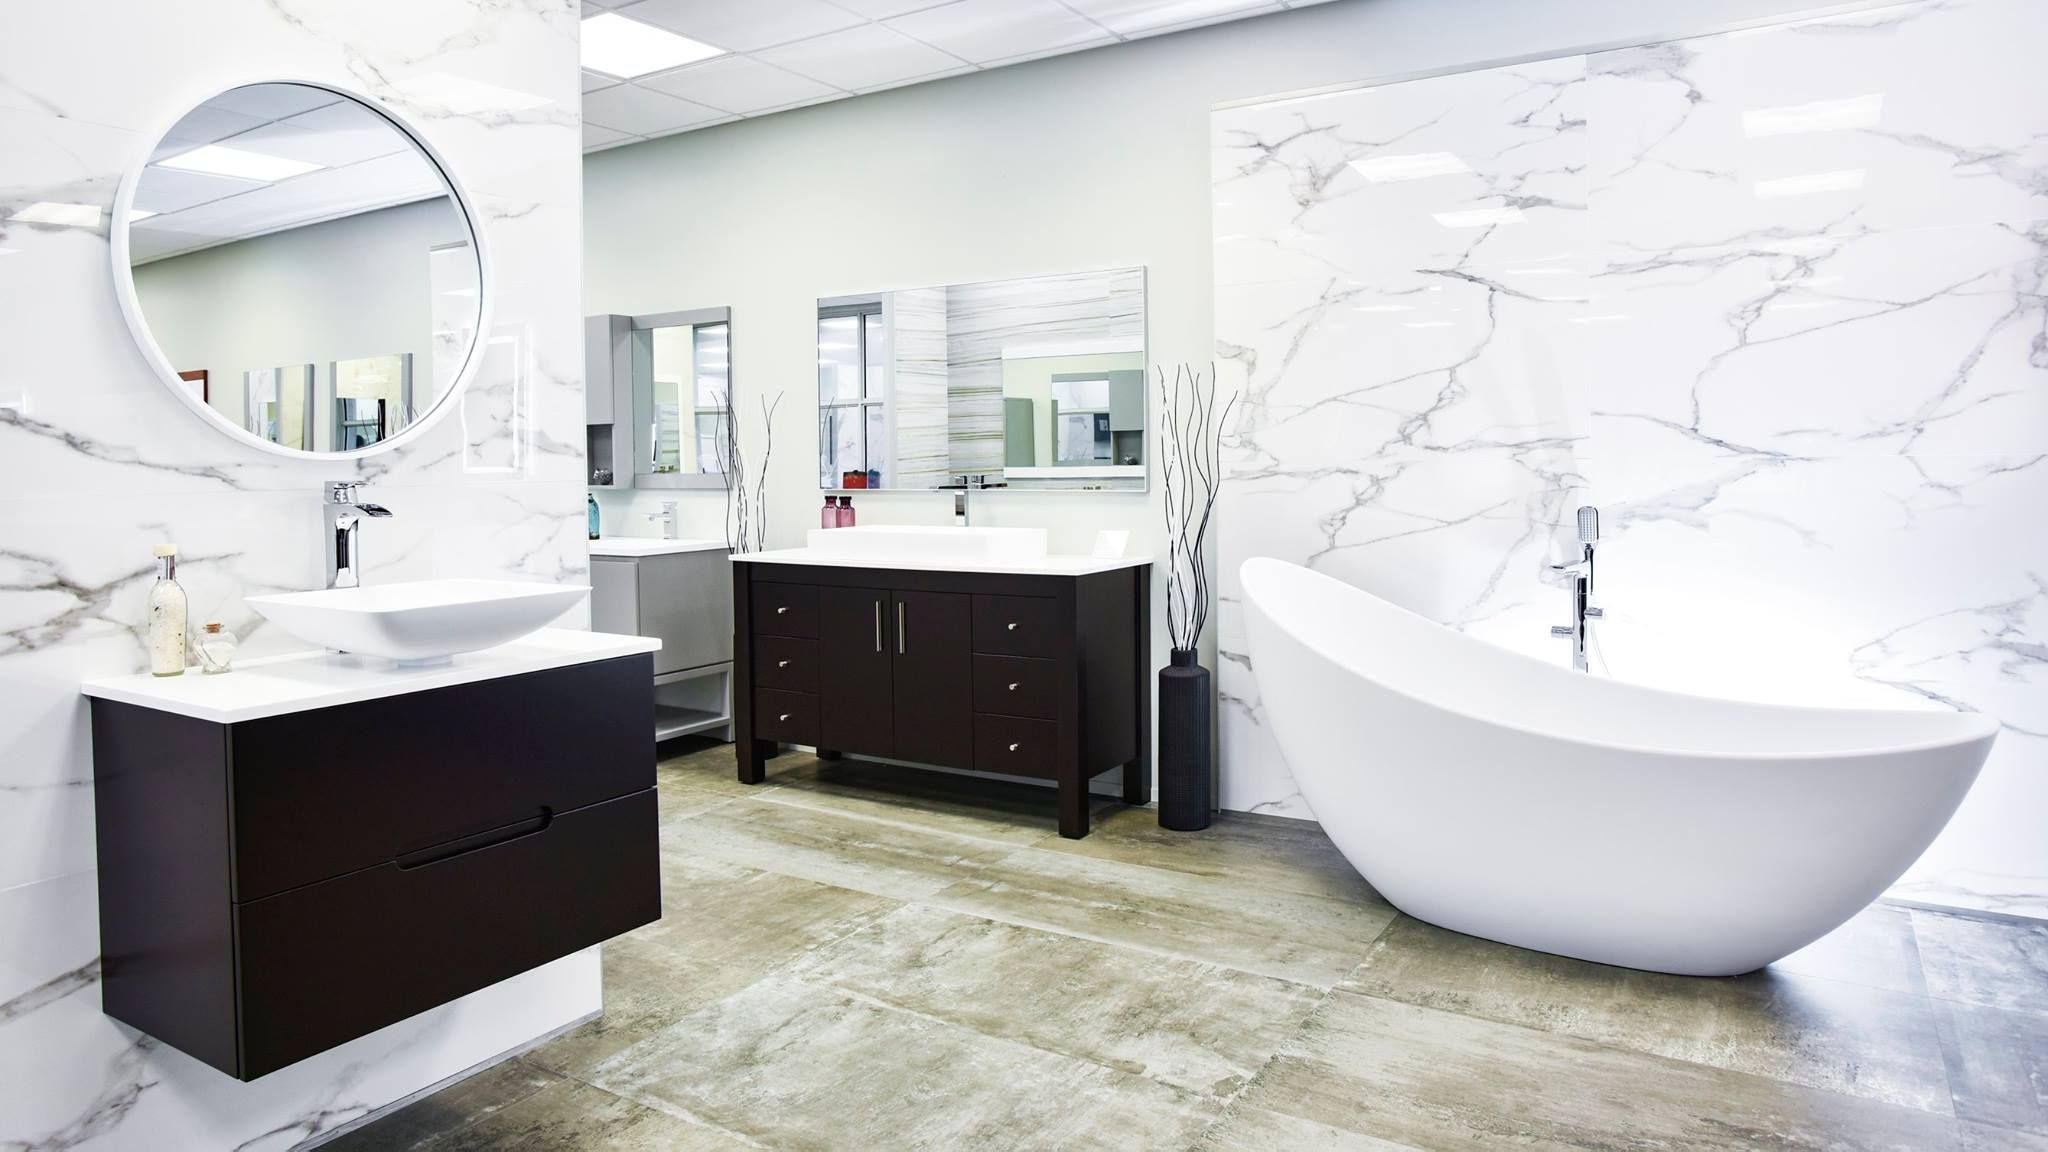 Bathroom Place Offers Modern Bathroom Vanities Faucets Showers - Bathroom fixtures fort lauderdale